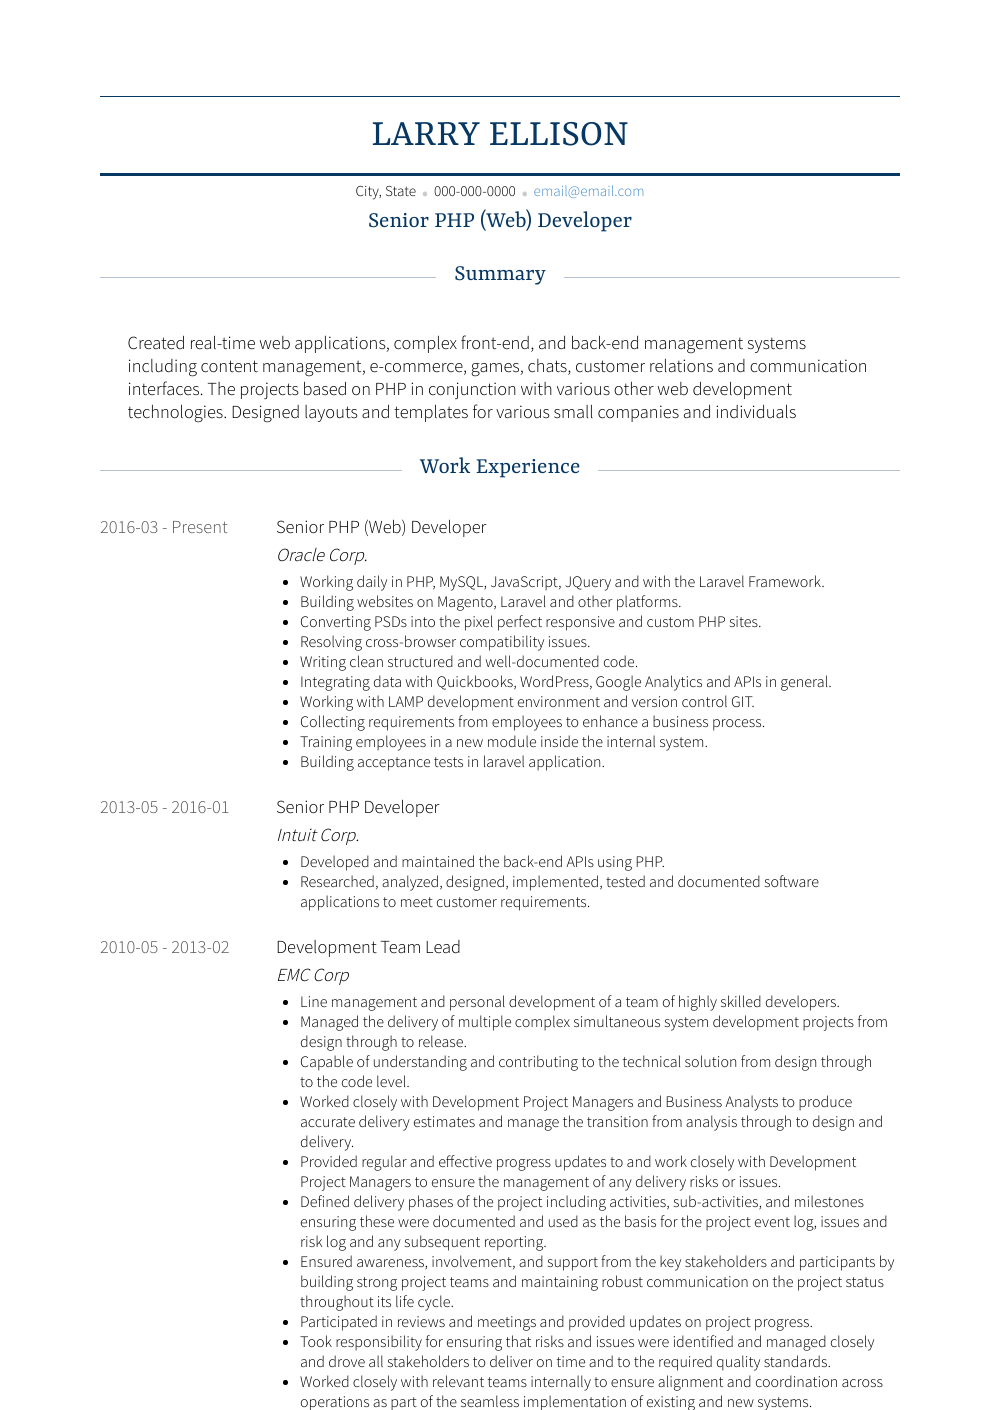 Php Developer - Resume Samples & Templates | VisualCV